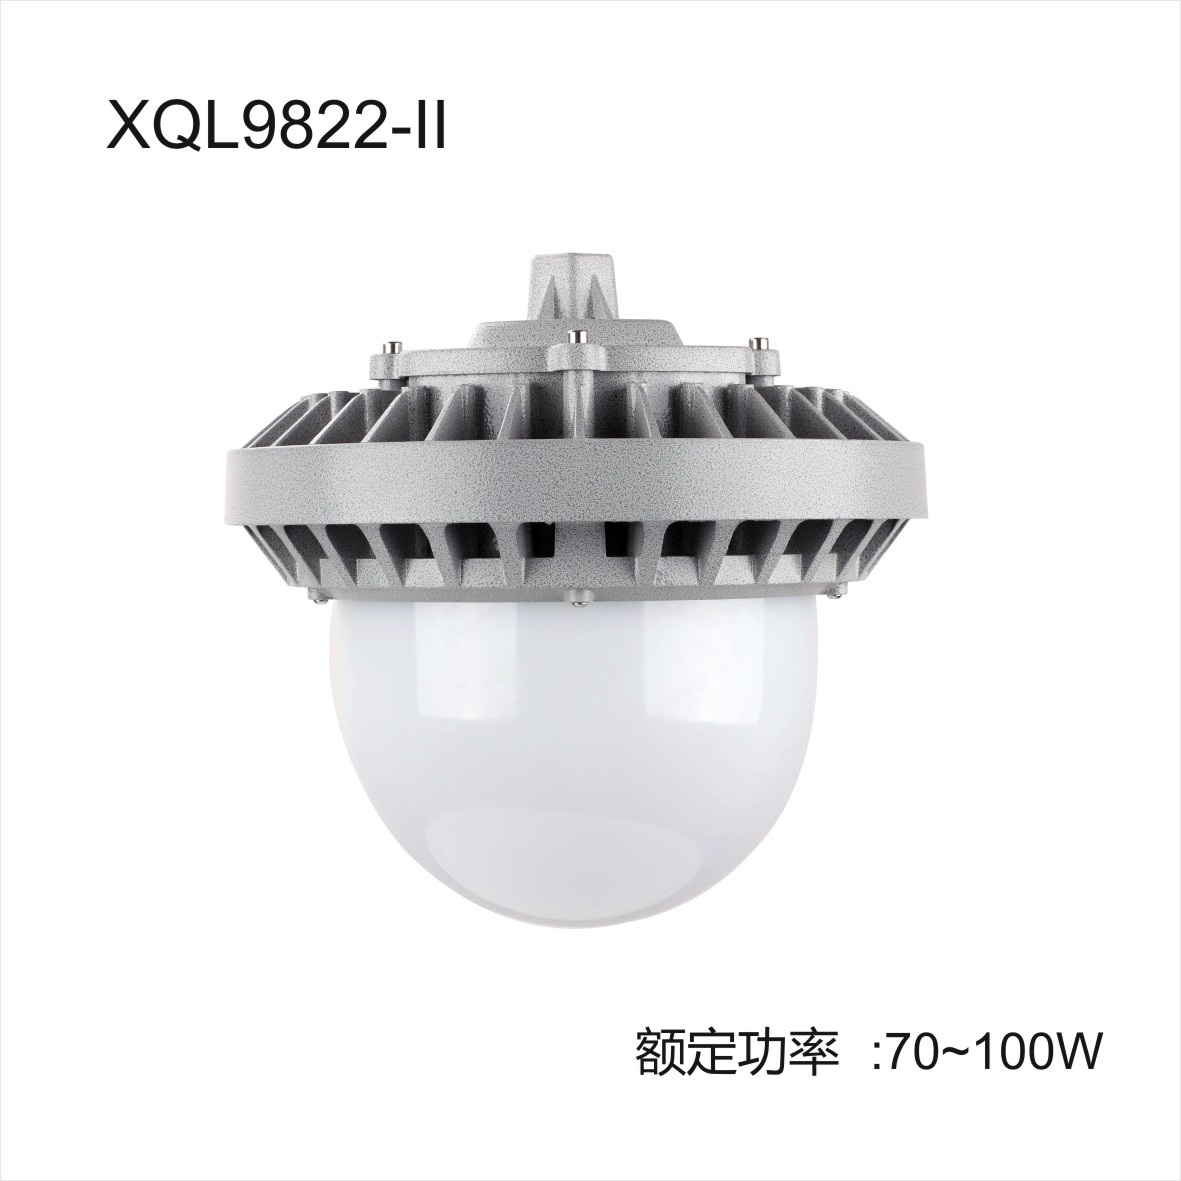 Explosion proof lamp explosion proof lighting flame proof lamp